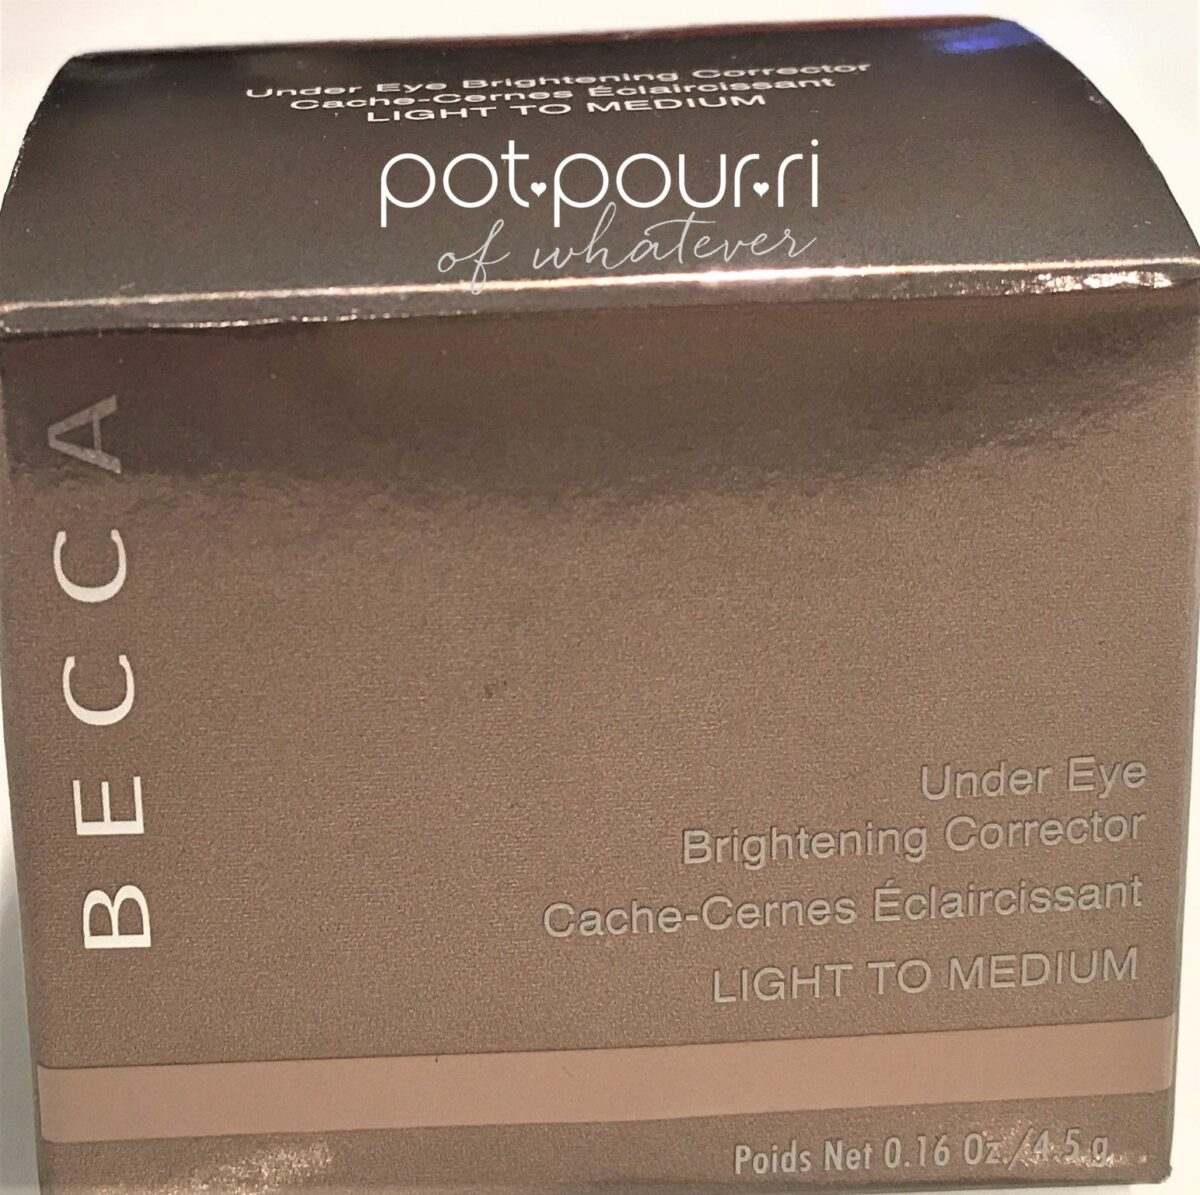 Becca-packaging-for-under-eye-corrector